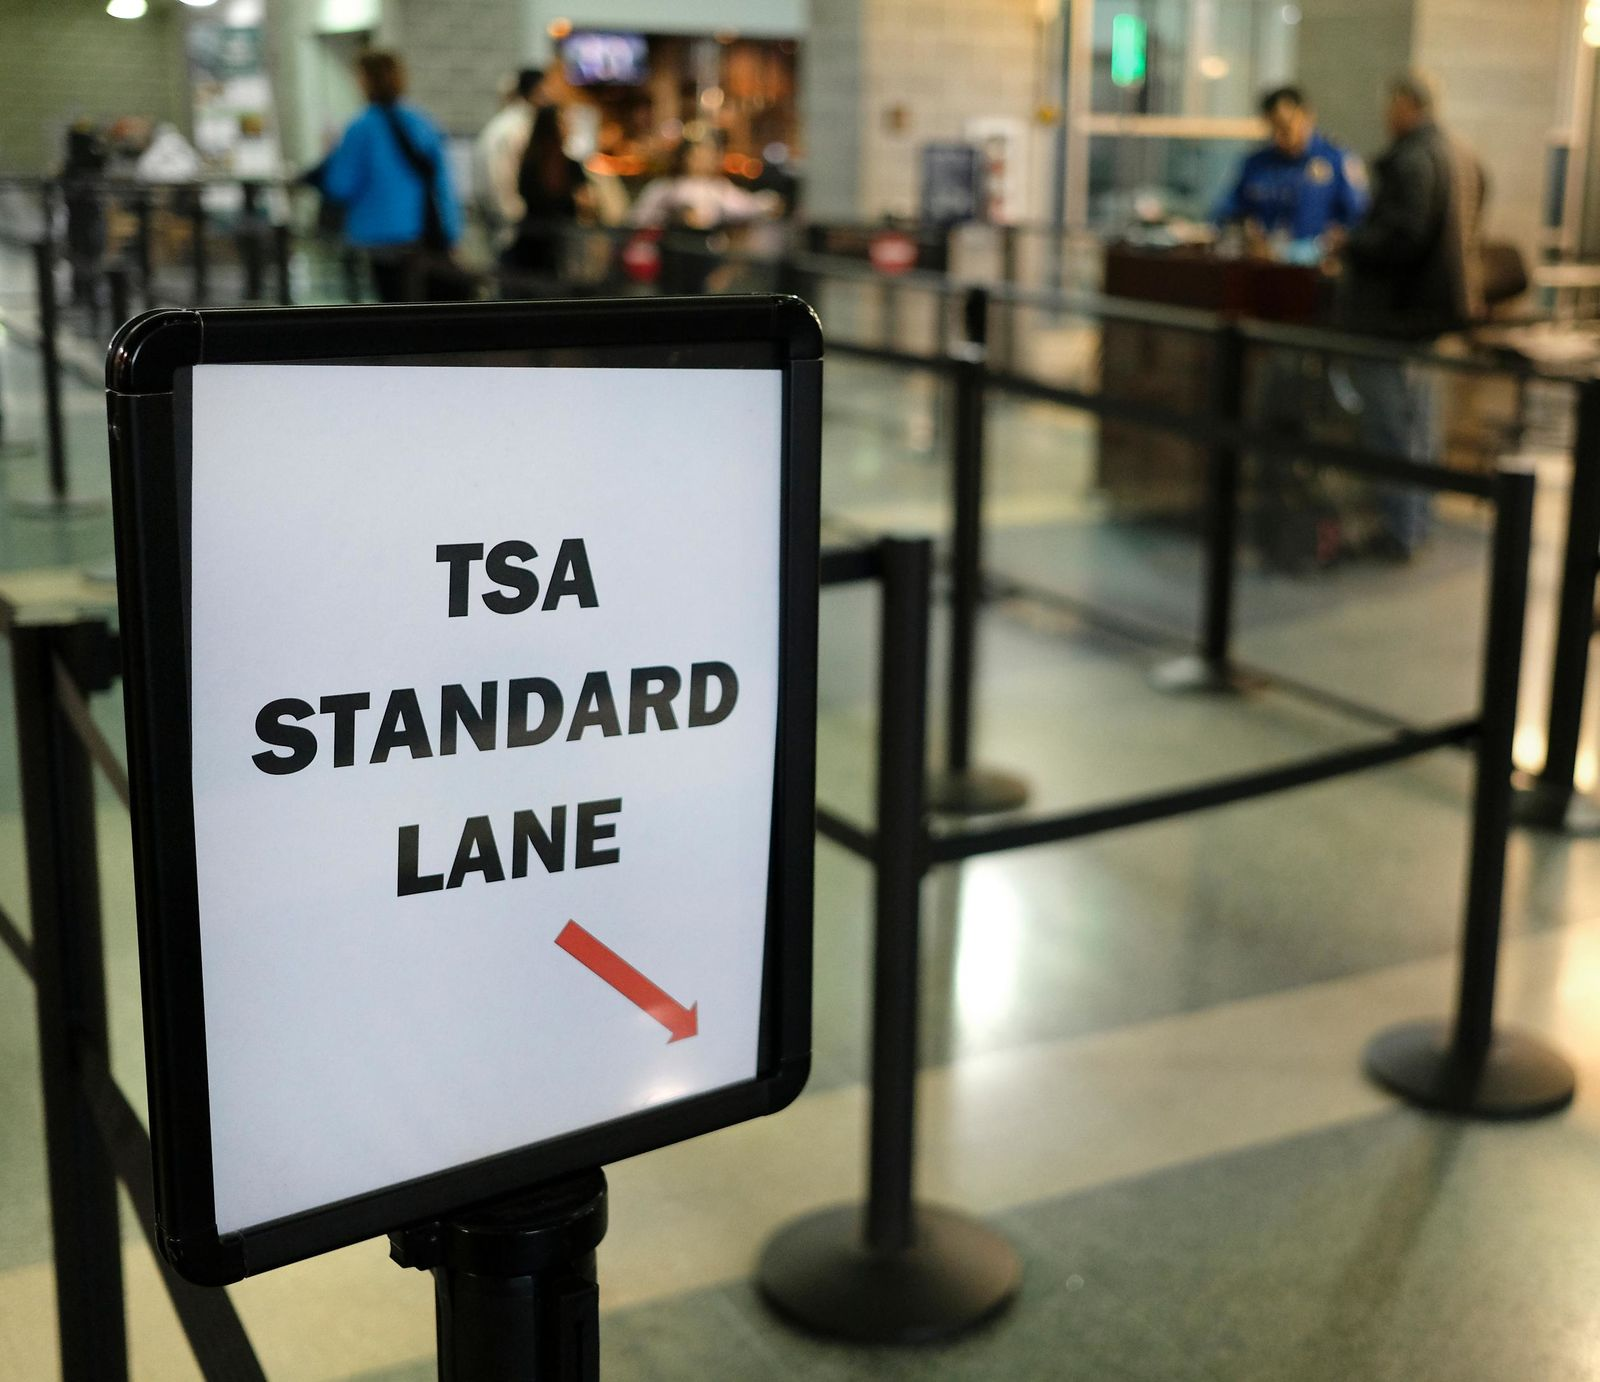 Wait lines were minimal at the TSA checkpoint in the Destin-Fort Walton Beach Airport in Valparaiso, Fla., Thursday, Jan. 17, 2019. TSA airport screeners are working without pay during the government shutdown. (Michael Snyder/Northwest Florida Daily News via AP)